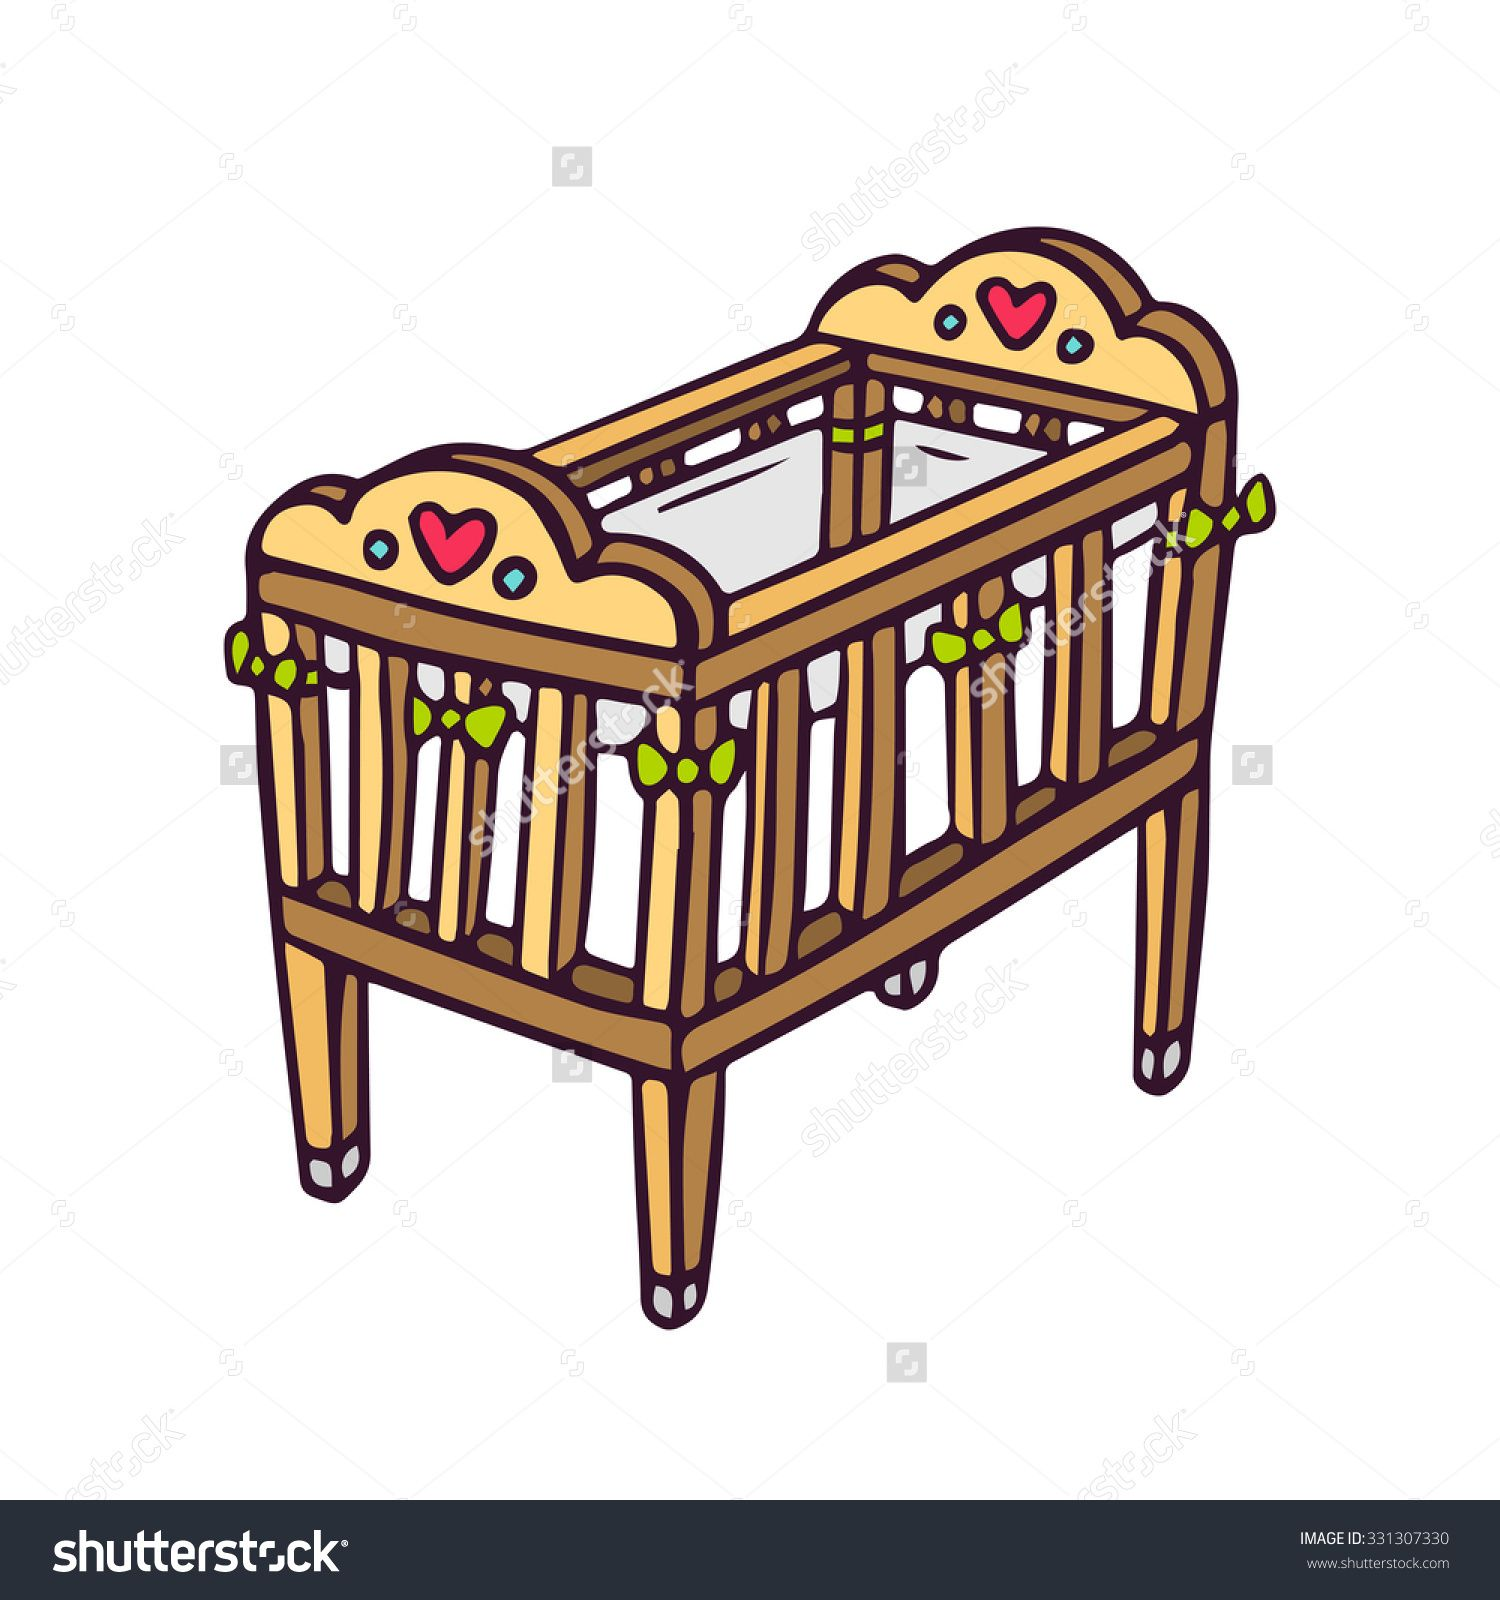 hight resolution of clipart cot clip arts galleries art gallery clip art baby cribs cot